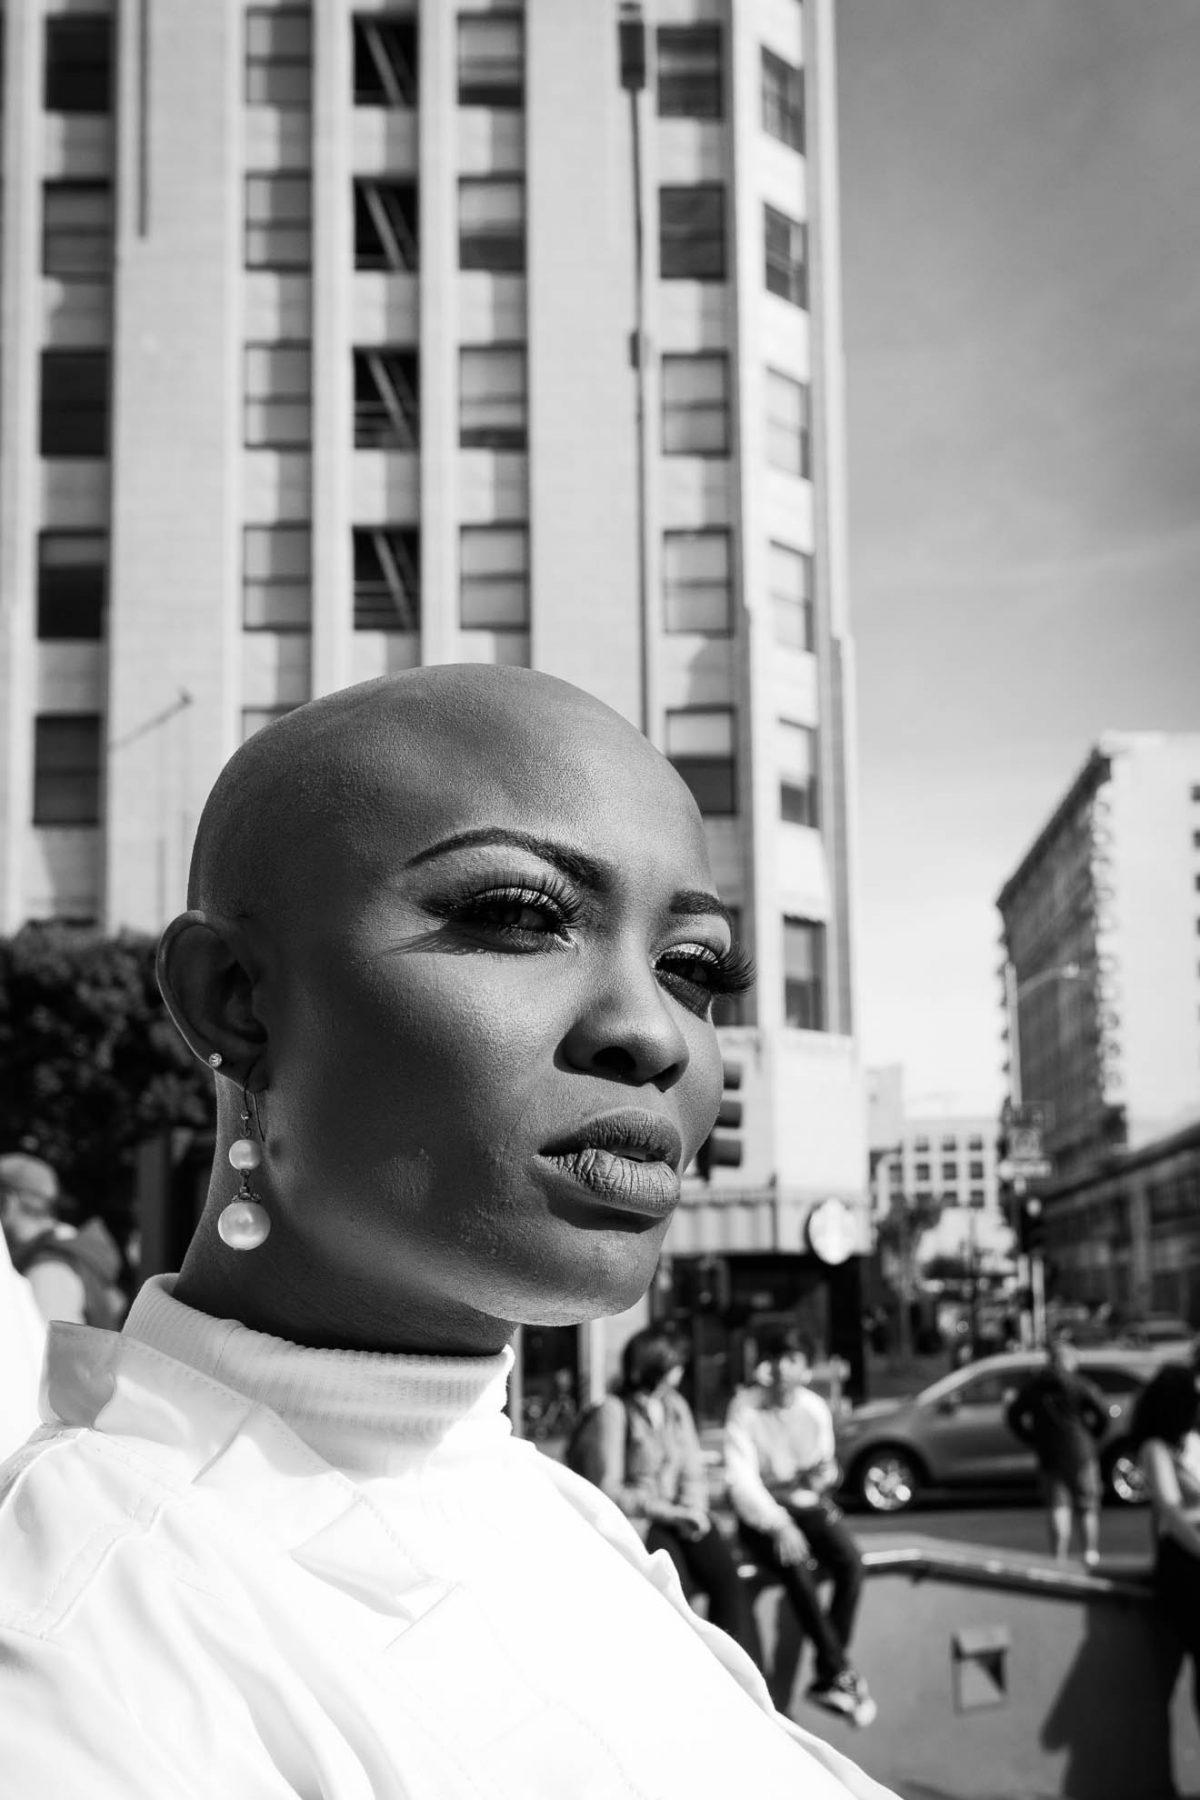 La Slavery March Street Portrait